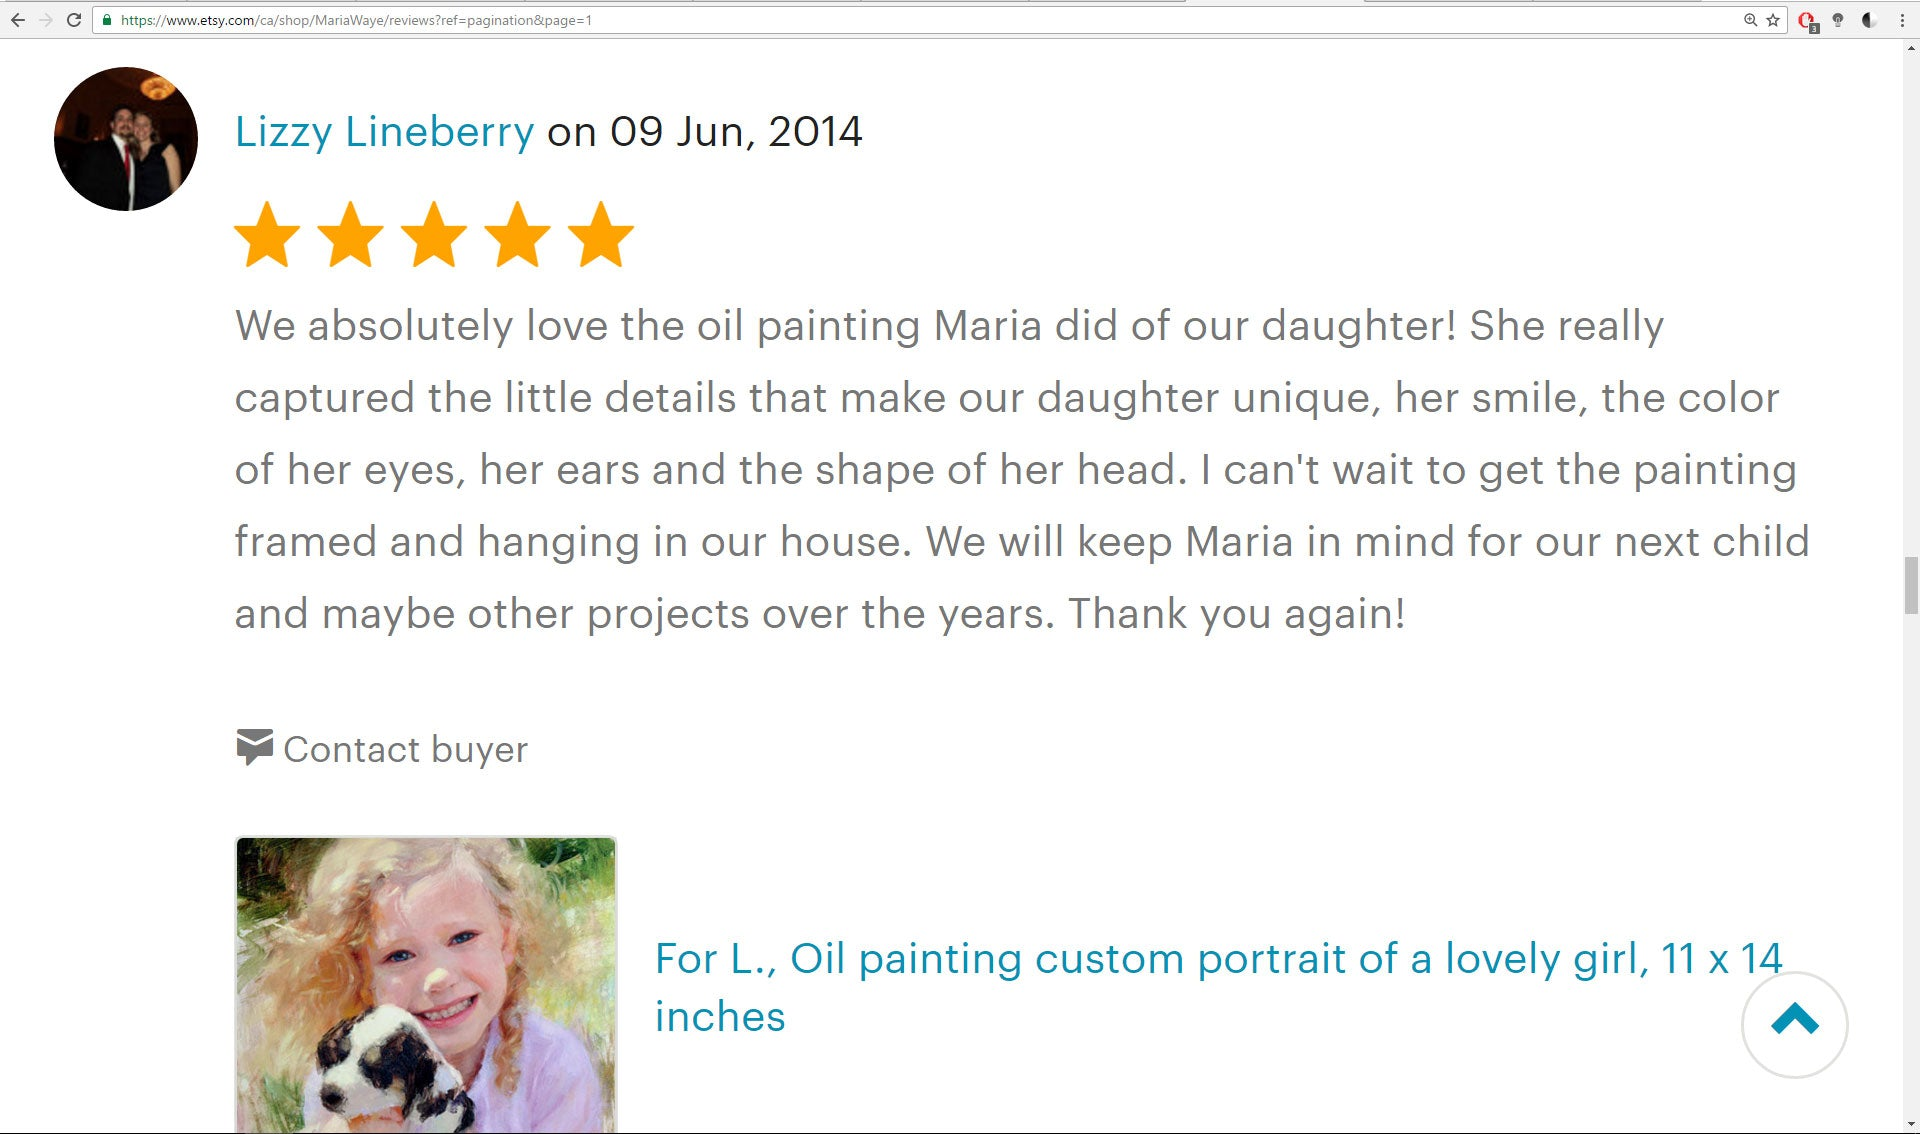 maria waye review custom portrait artist toronto canada ontario 5 star reviews fine art realistic drawing painting from photo testimonials customer satisfaction